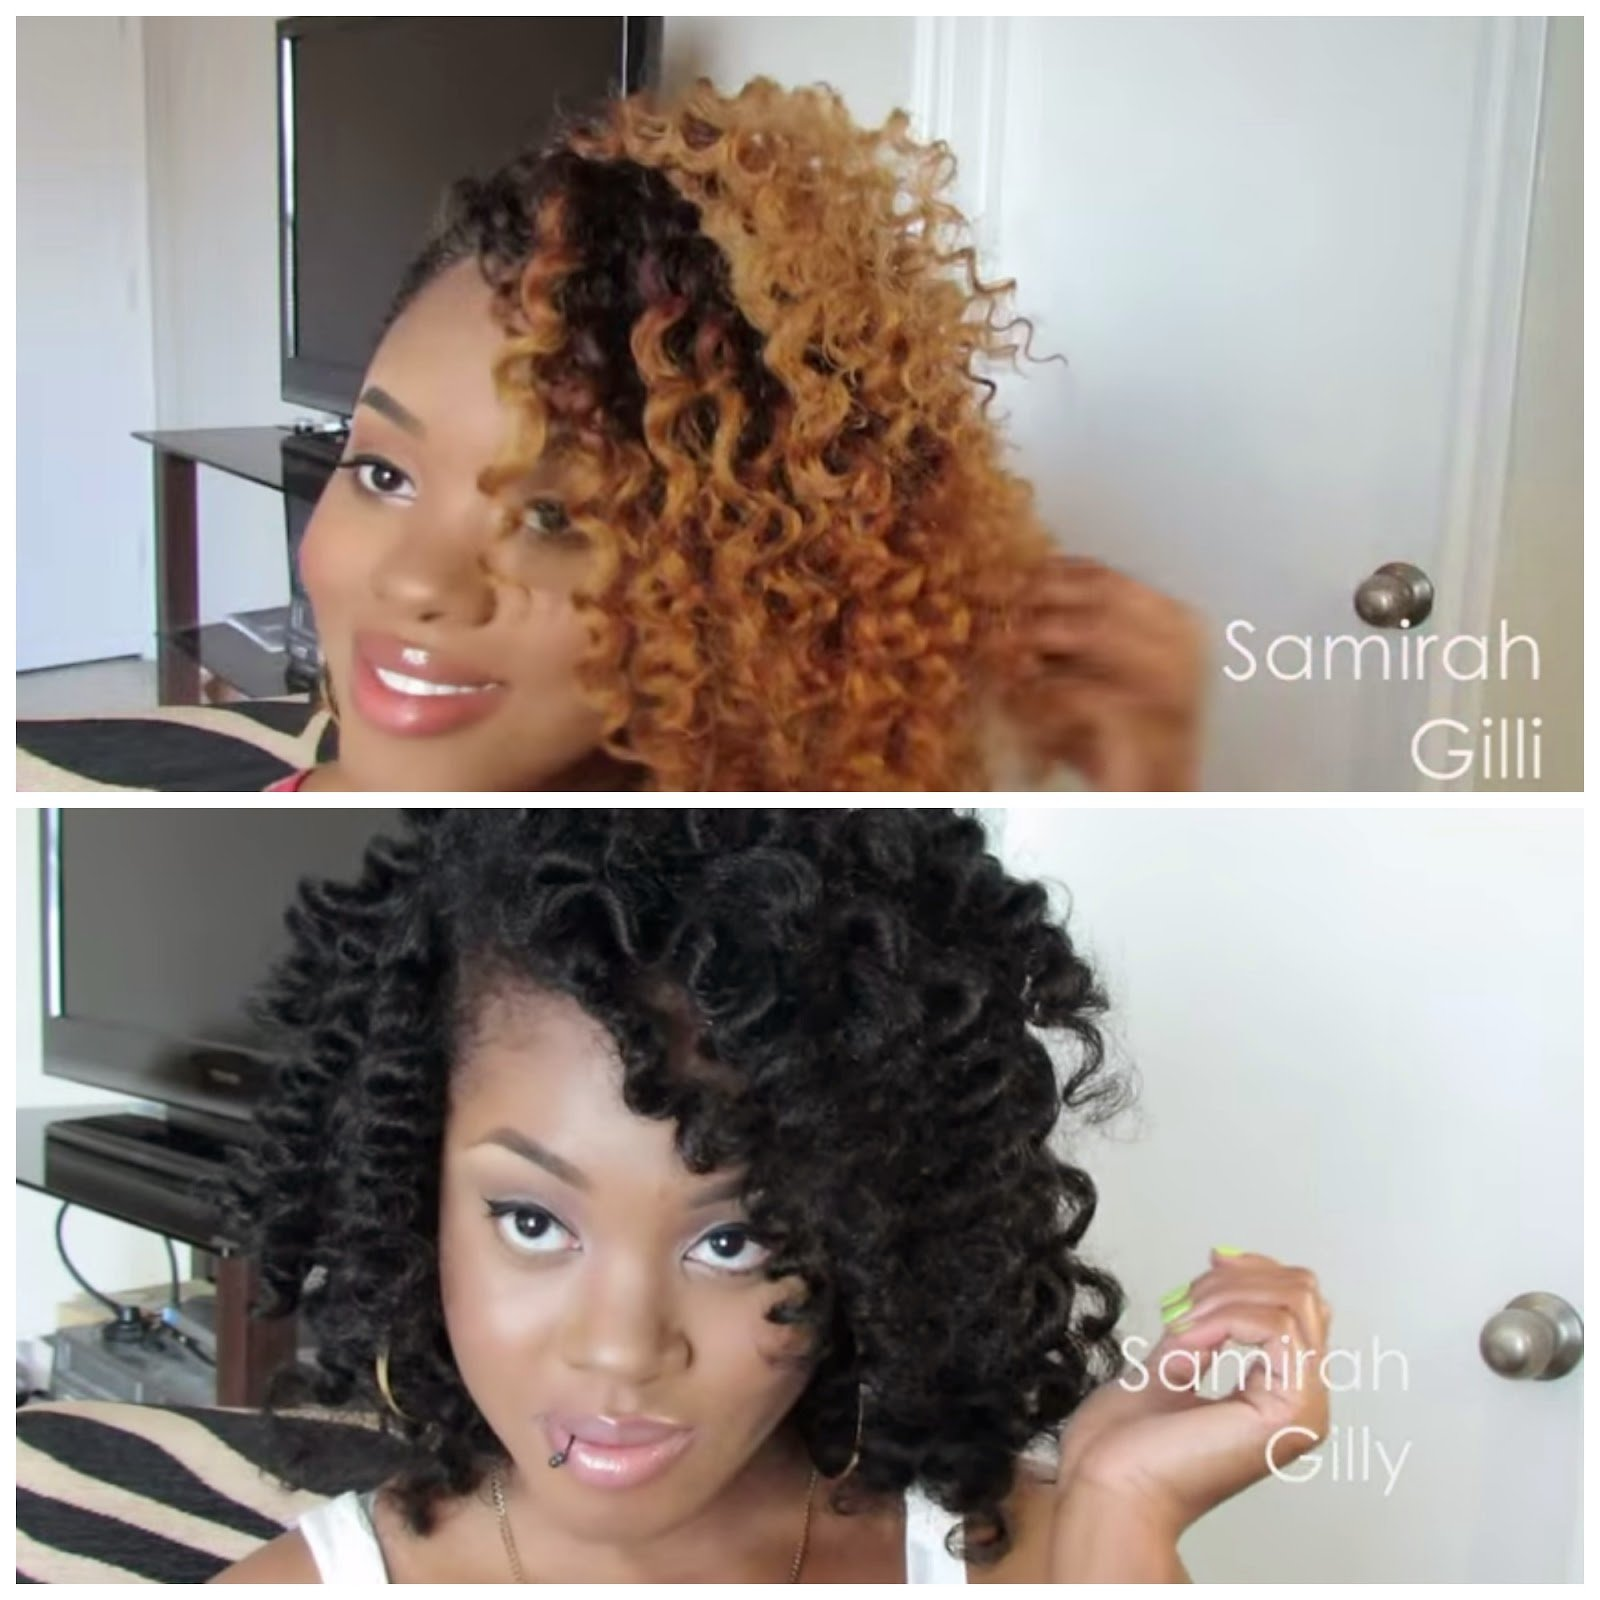 New 2 Perfect Styles For Heat Damaged Hair Seriously Natural Ideas With Pictures